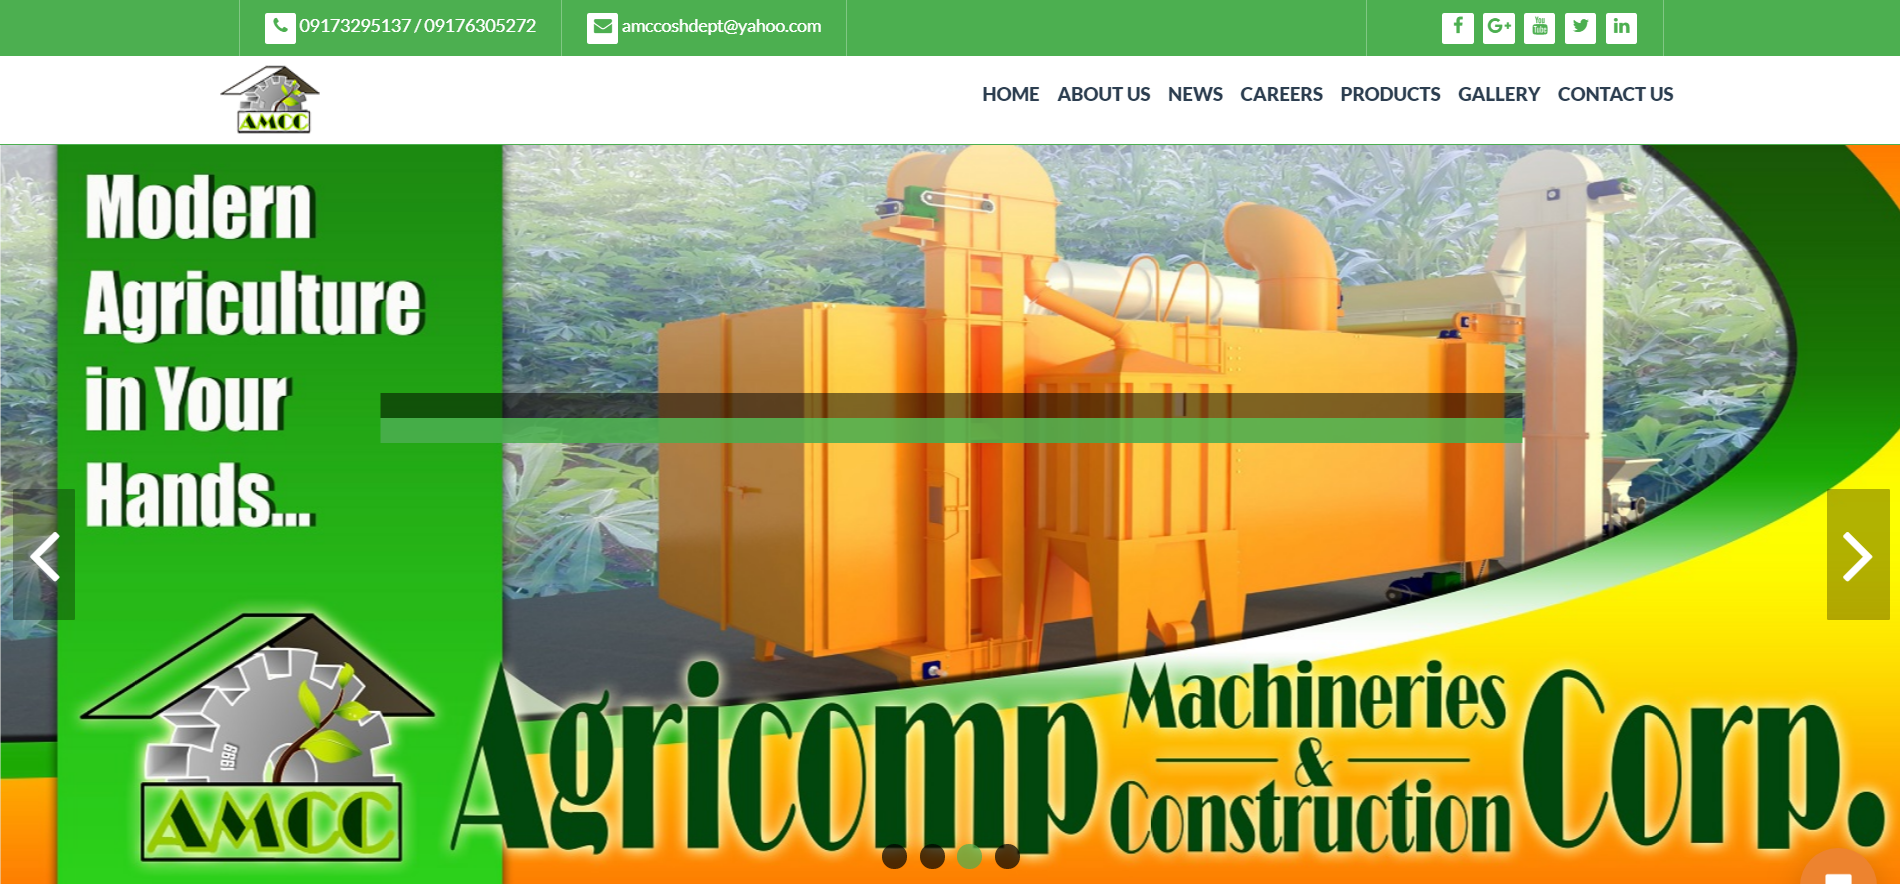 Agri-component Machineries Construction Corporation